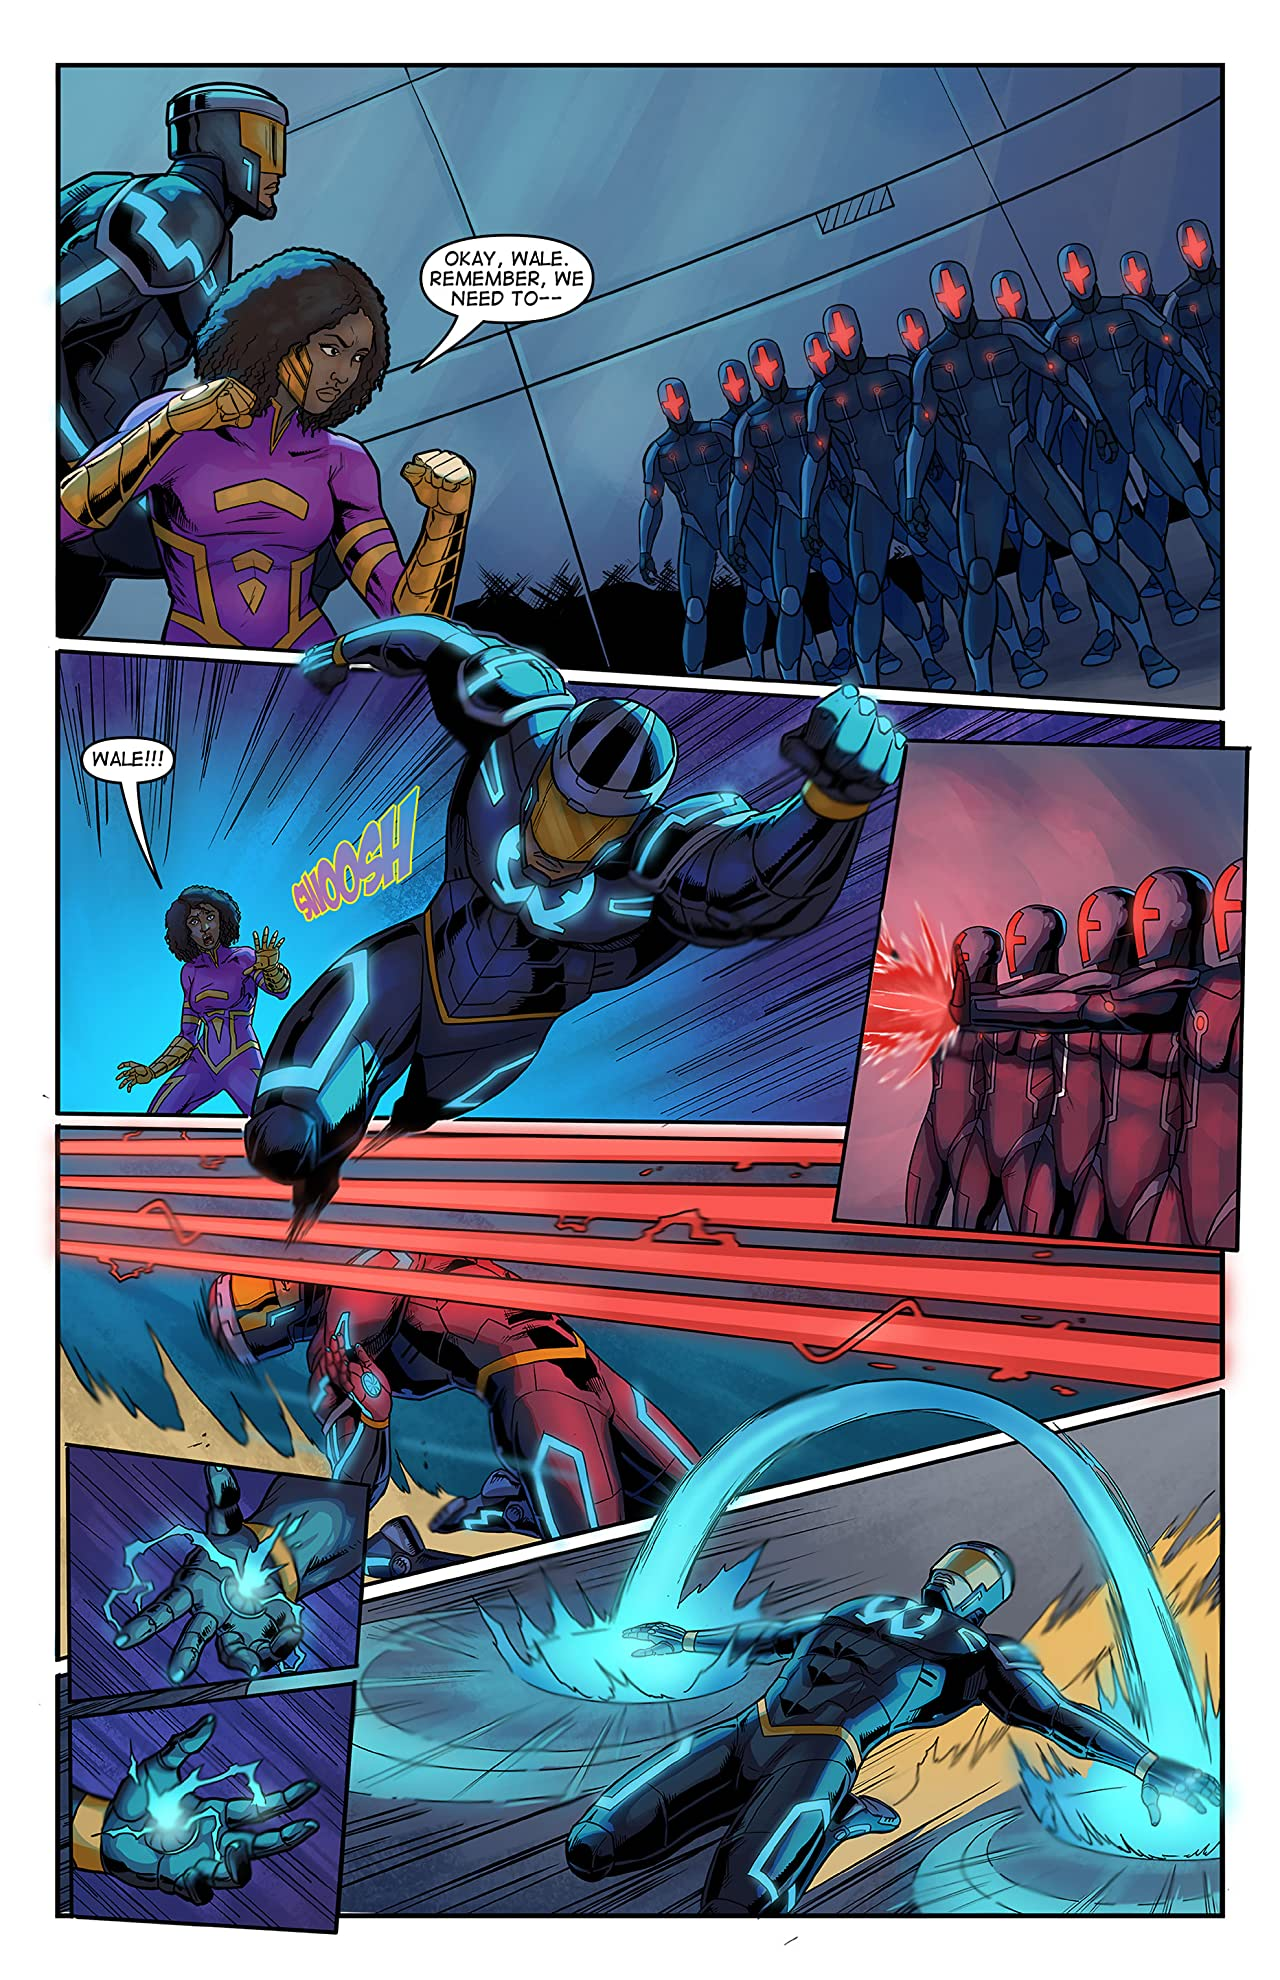 E.X.O. - The Legend of Wale Williams Part Three: Rise of AVON